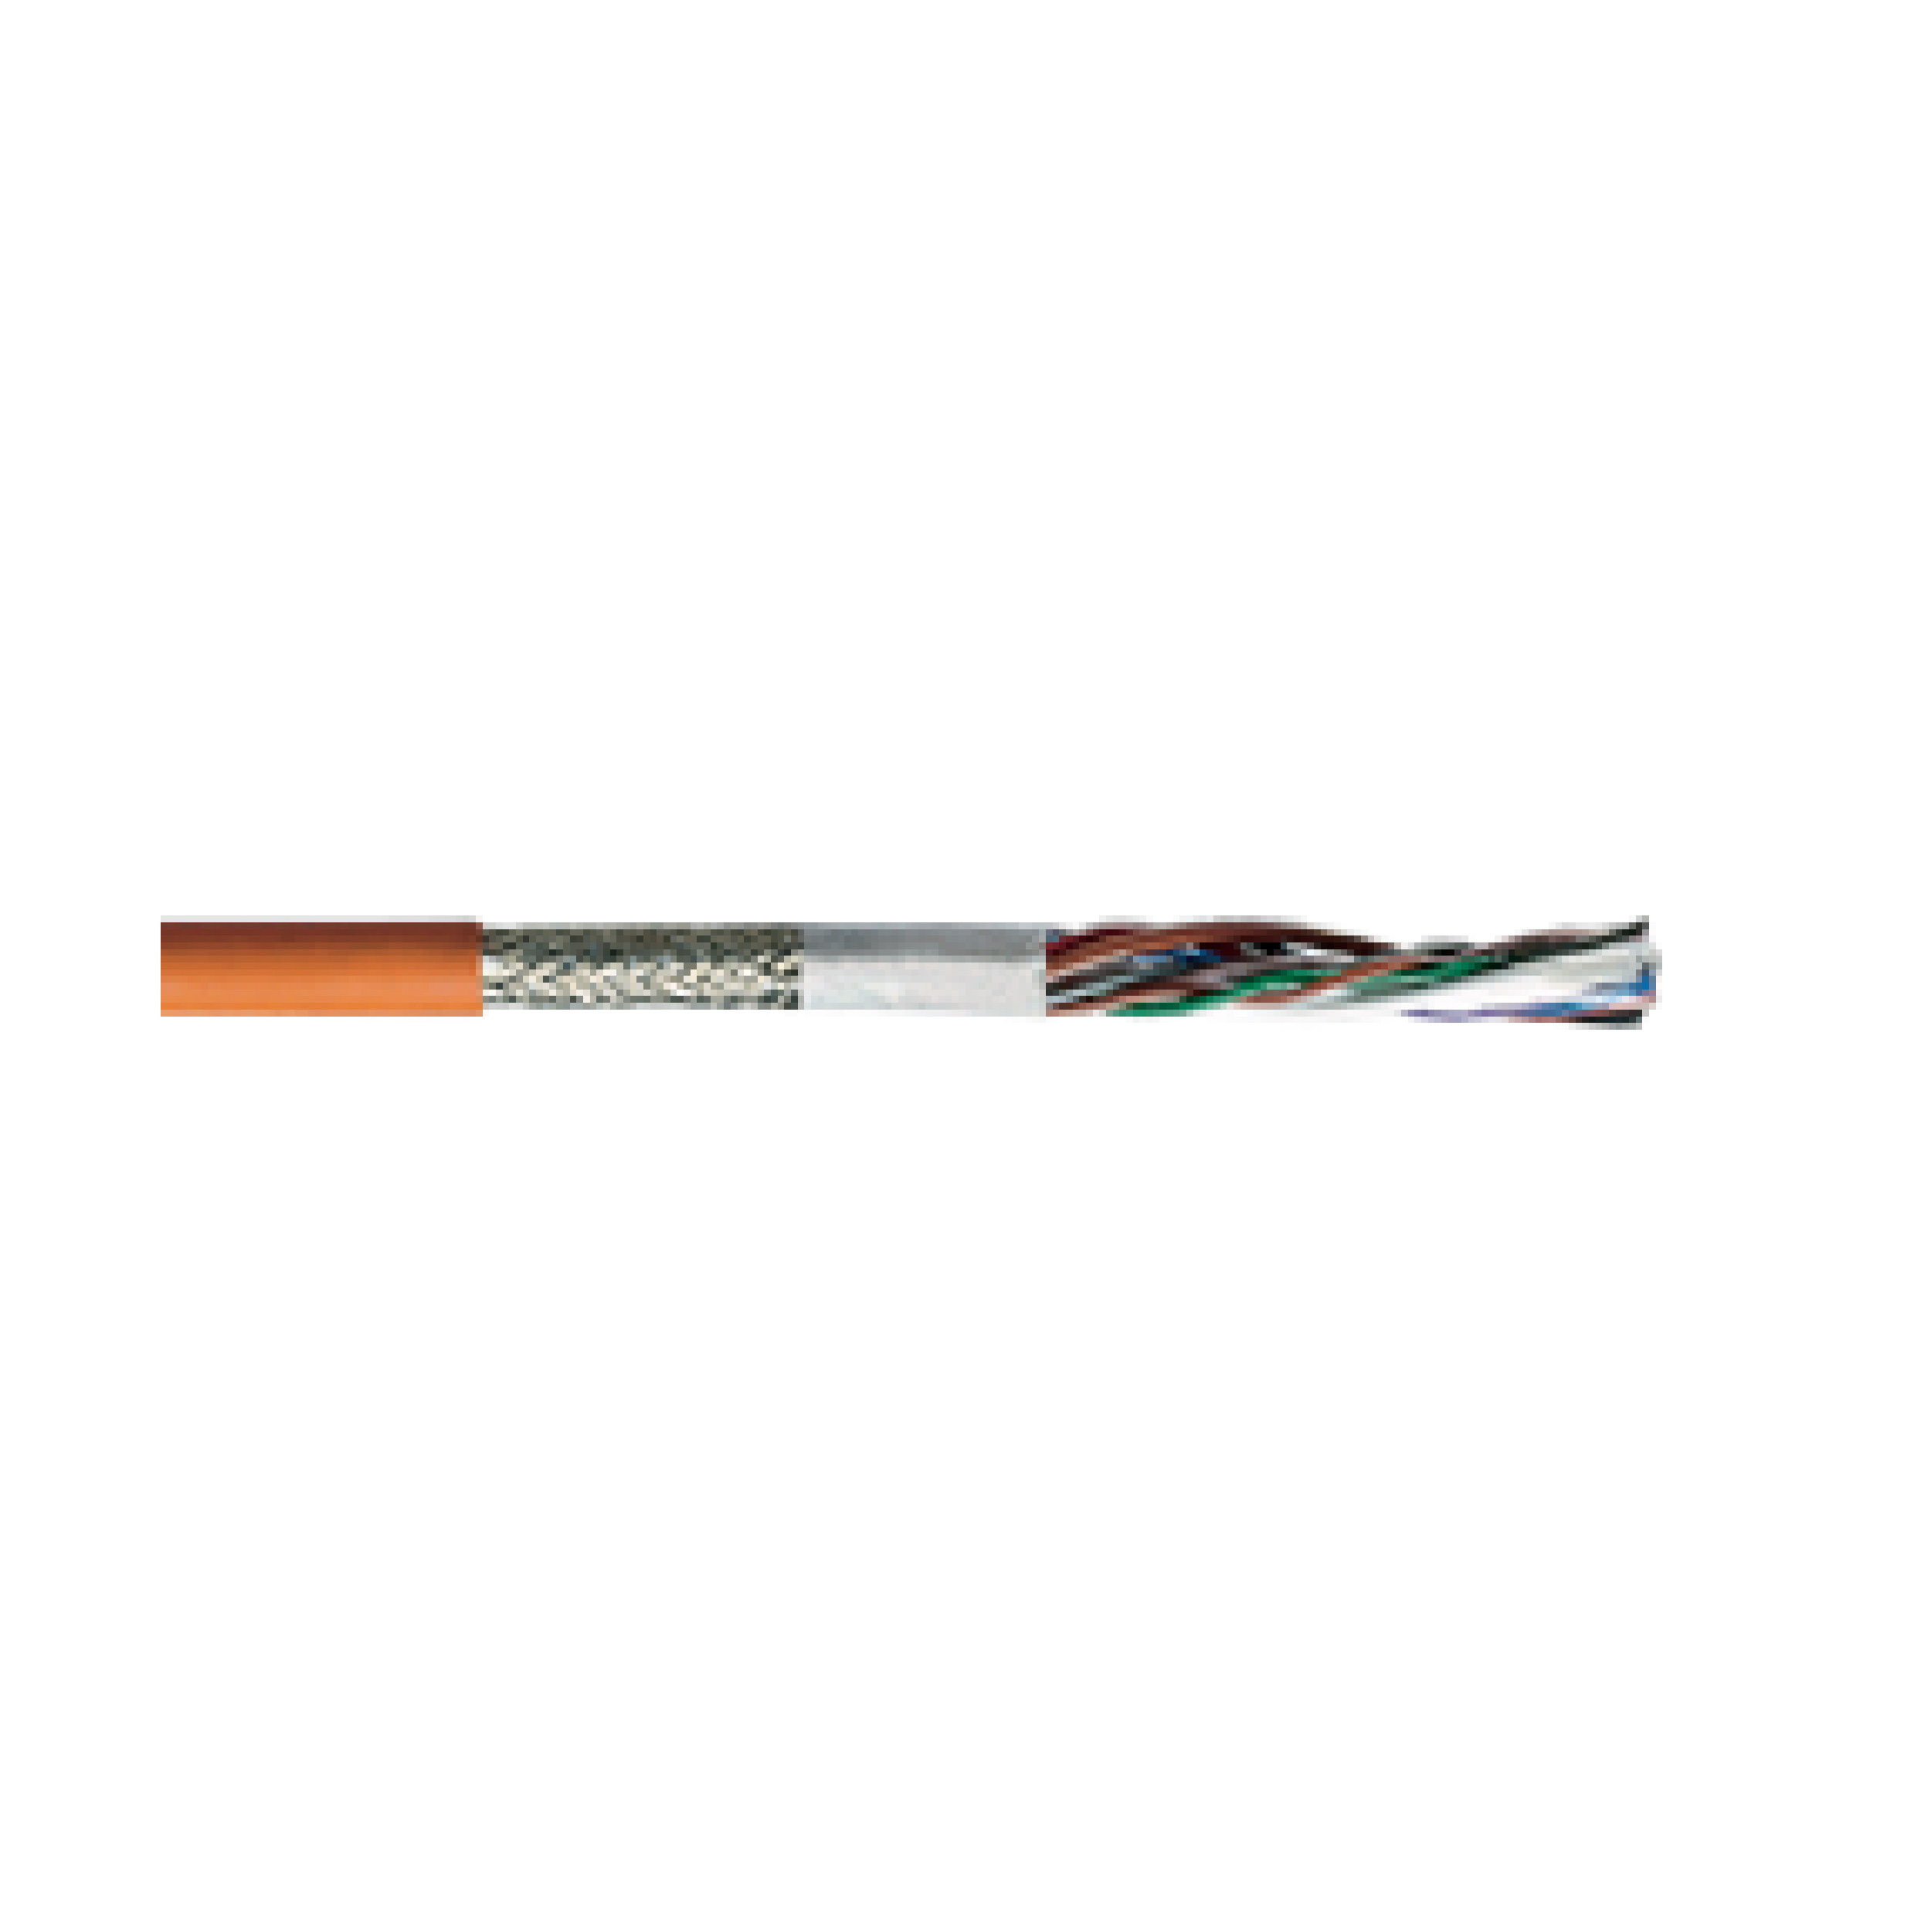 Extra-Flexible Cables/Encoder, Measuring System And Resolver Cables